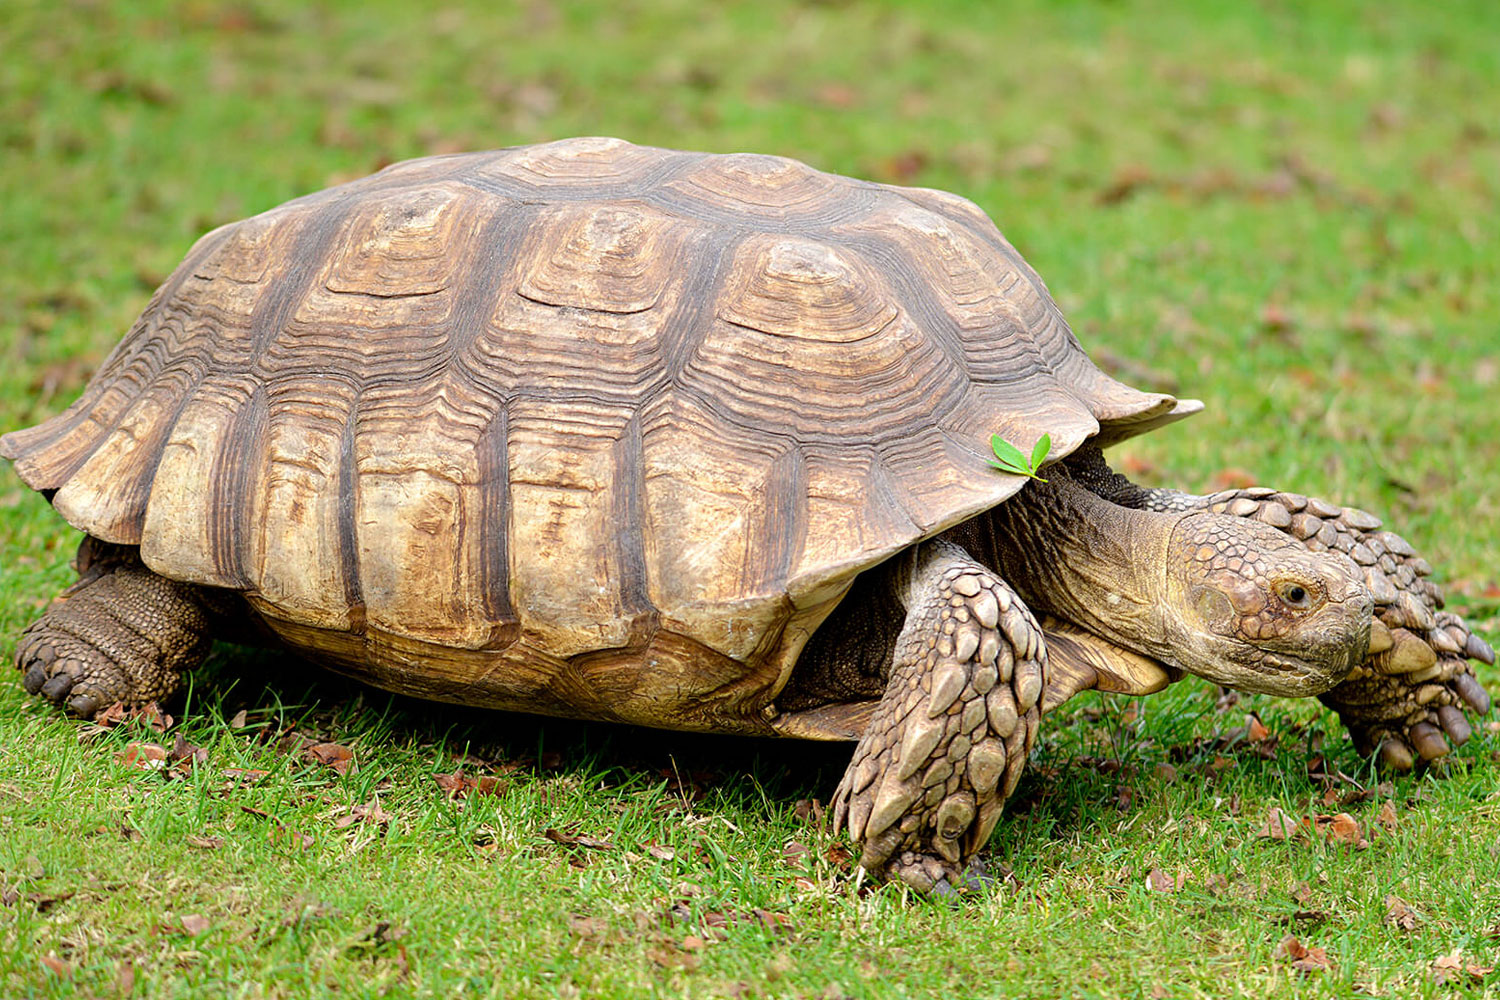 african sulcata - Will reach 150+ lbs / 90% grass & weed diet / Very sturdy walls & heated tortoise house